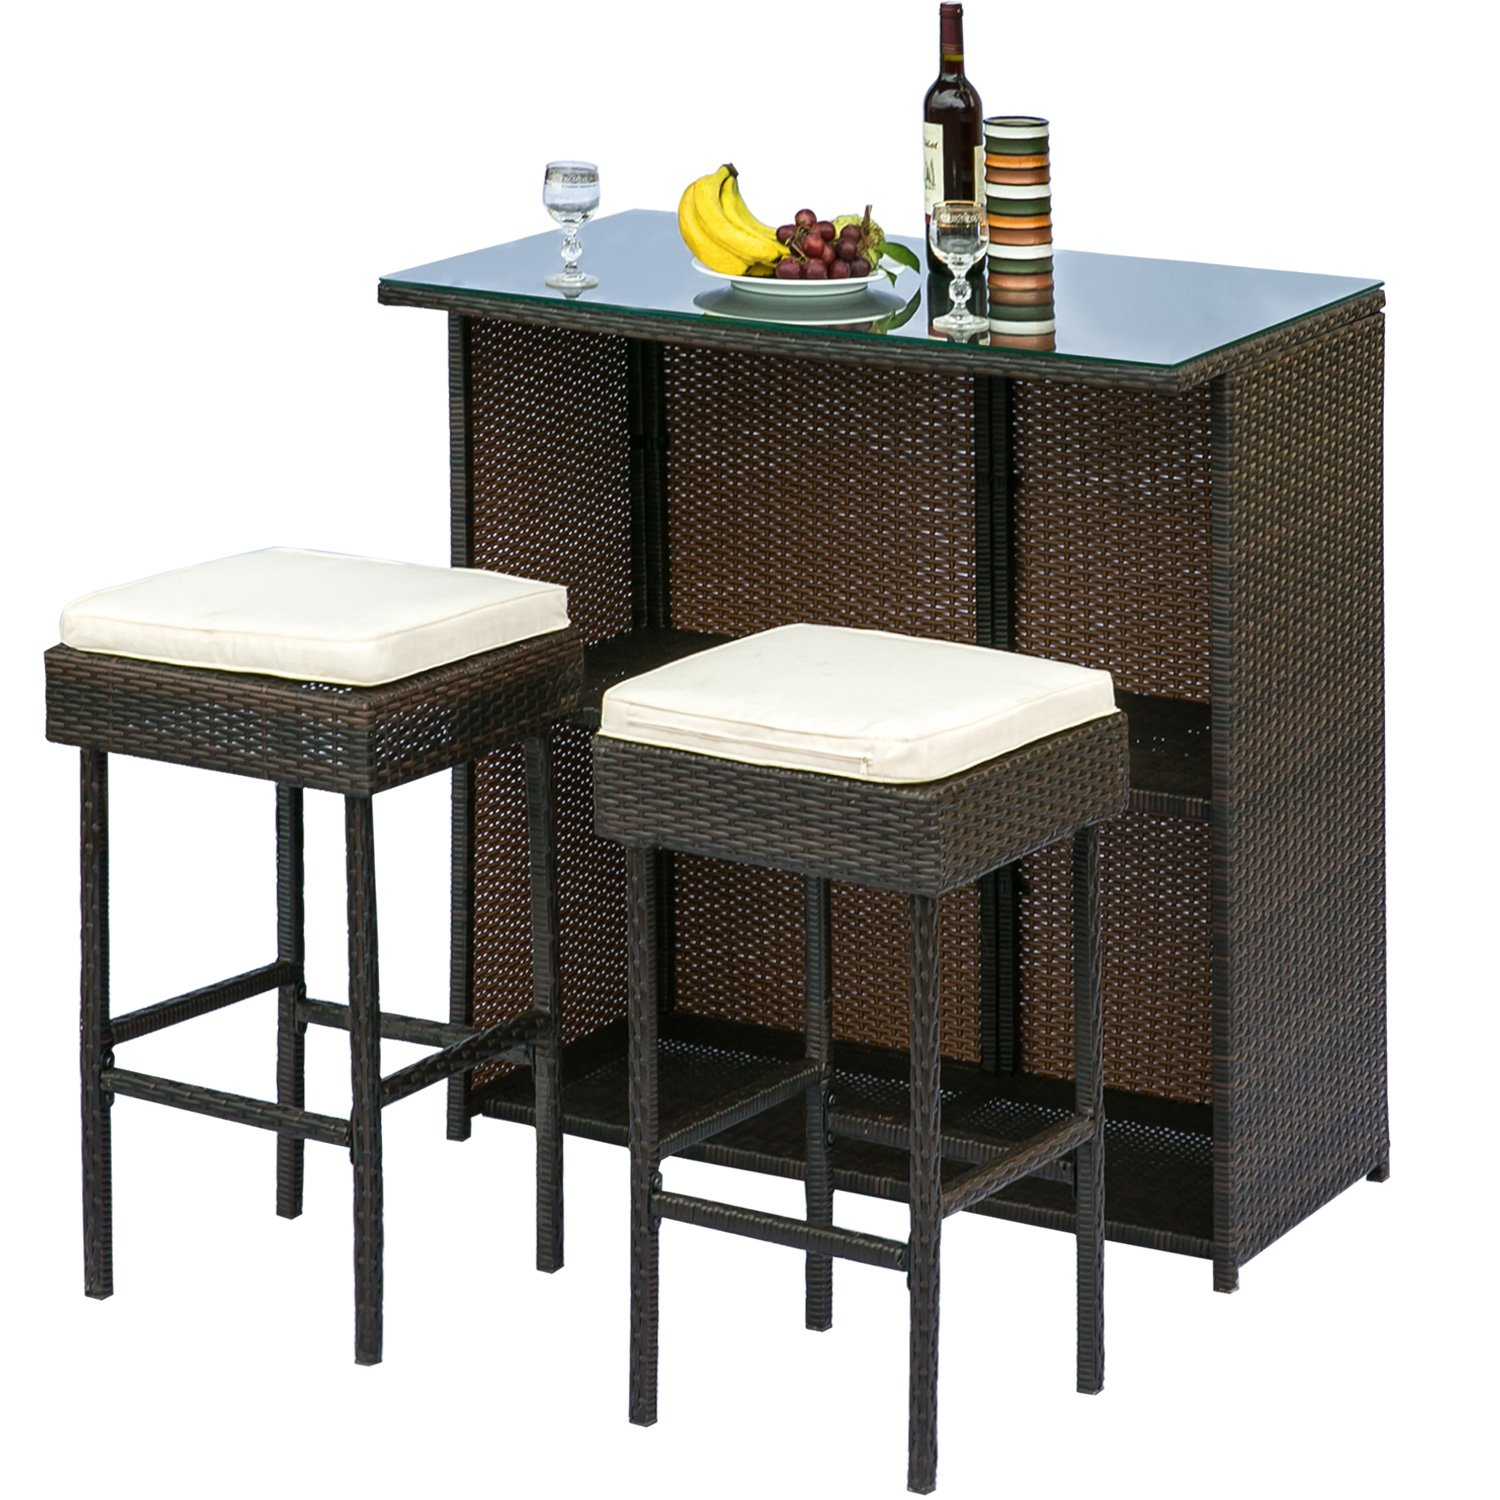 Leisure Zone 3 Piece Outdoor Patio Rattan Bar Set with Cushion Garden Barstool Furniture Set